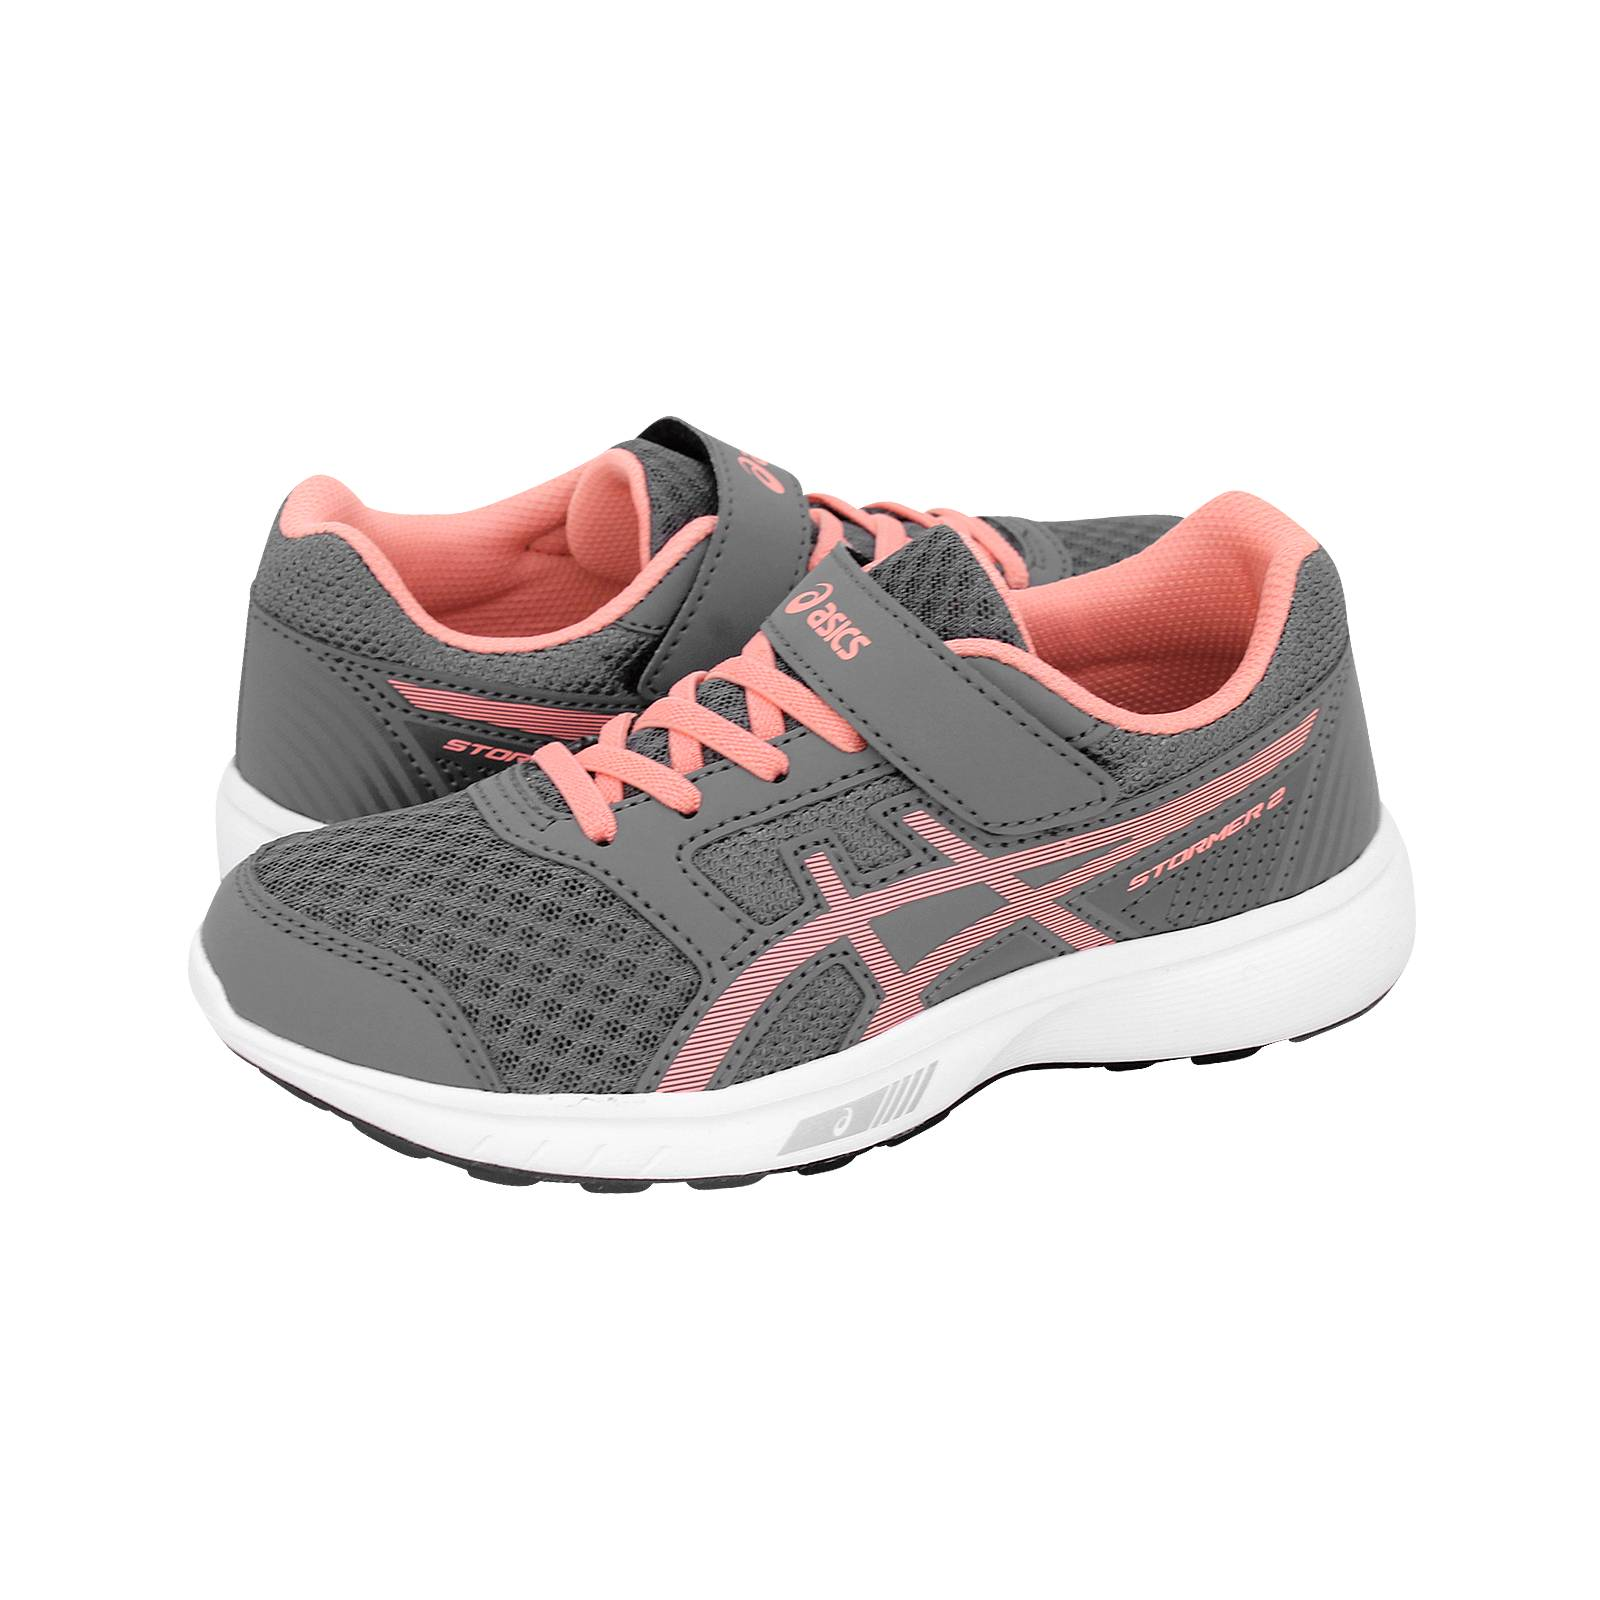 778f54f2c3e Stormer 2 PS - Παιδικά αθλητικά παπούτσια Asics από υφασμα και δερμα ...